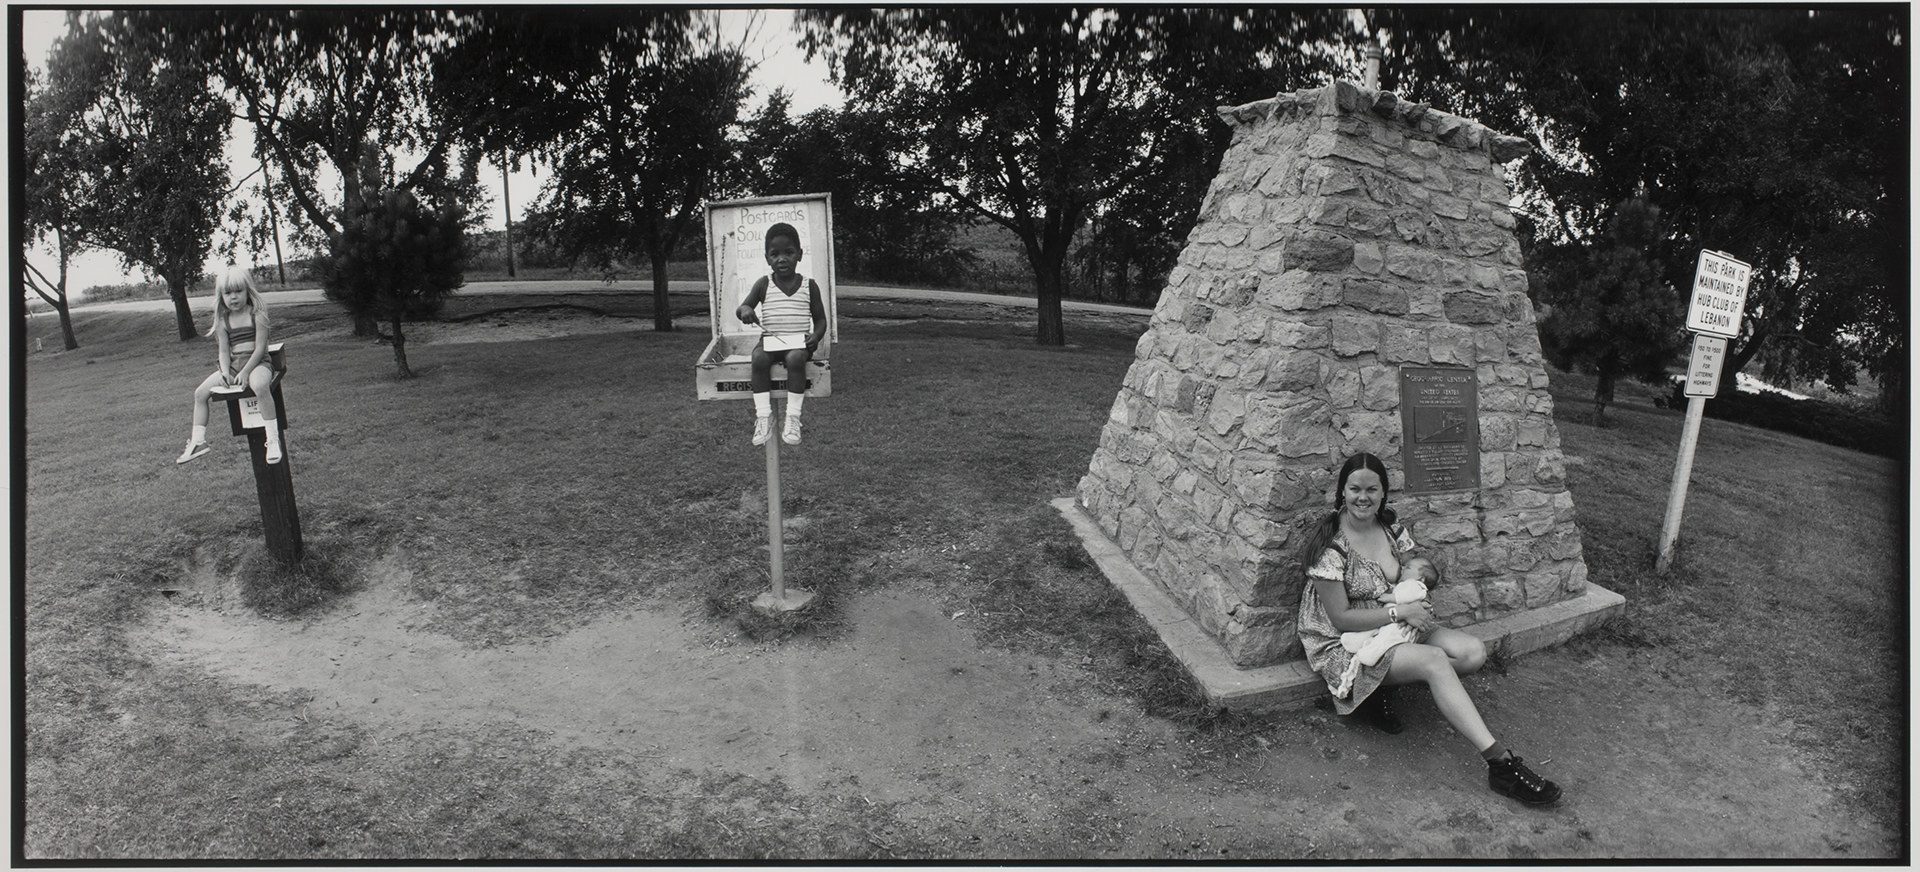 A child sitting on a water fountain, a child sitting on a raised platform, and a smiling woman leaning against a monument and nursing a baby